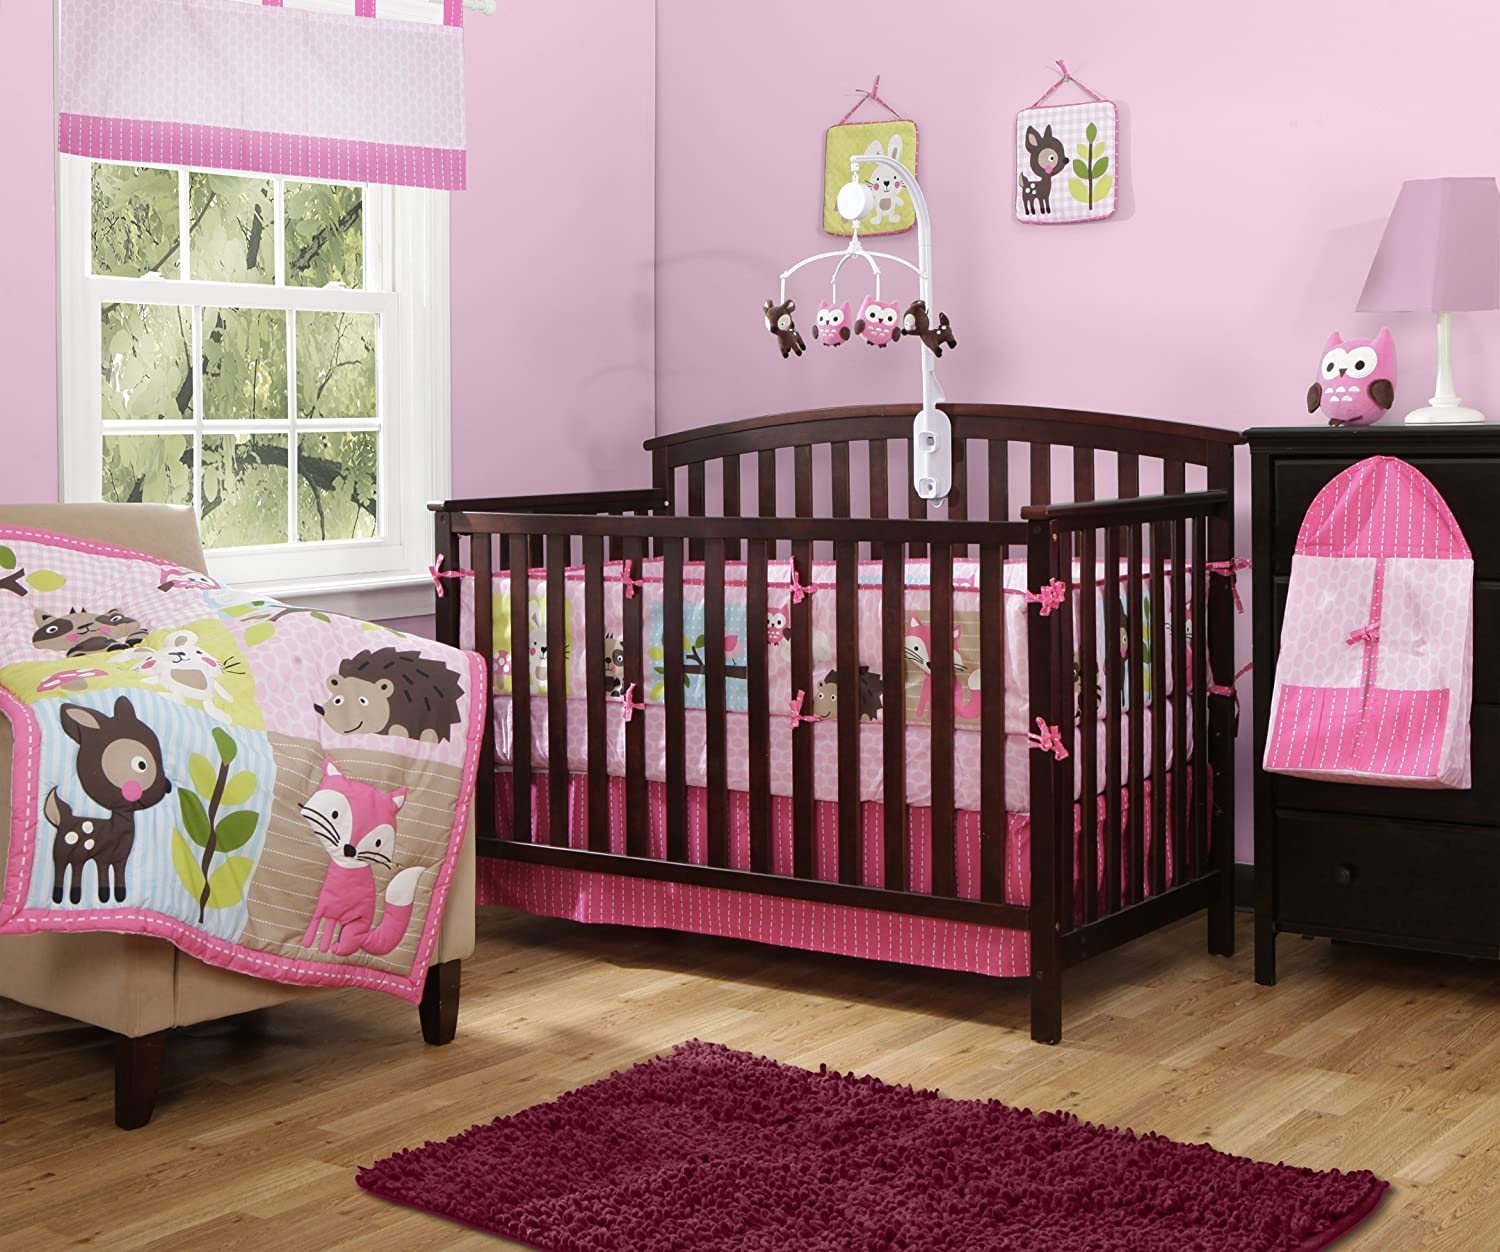 Baby Boom Woodland Girls Crib Bedding